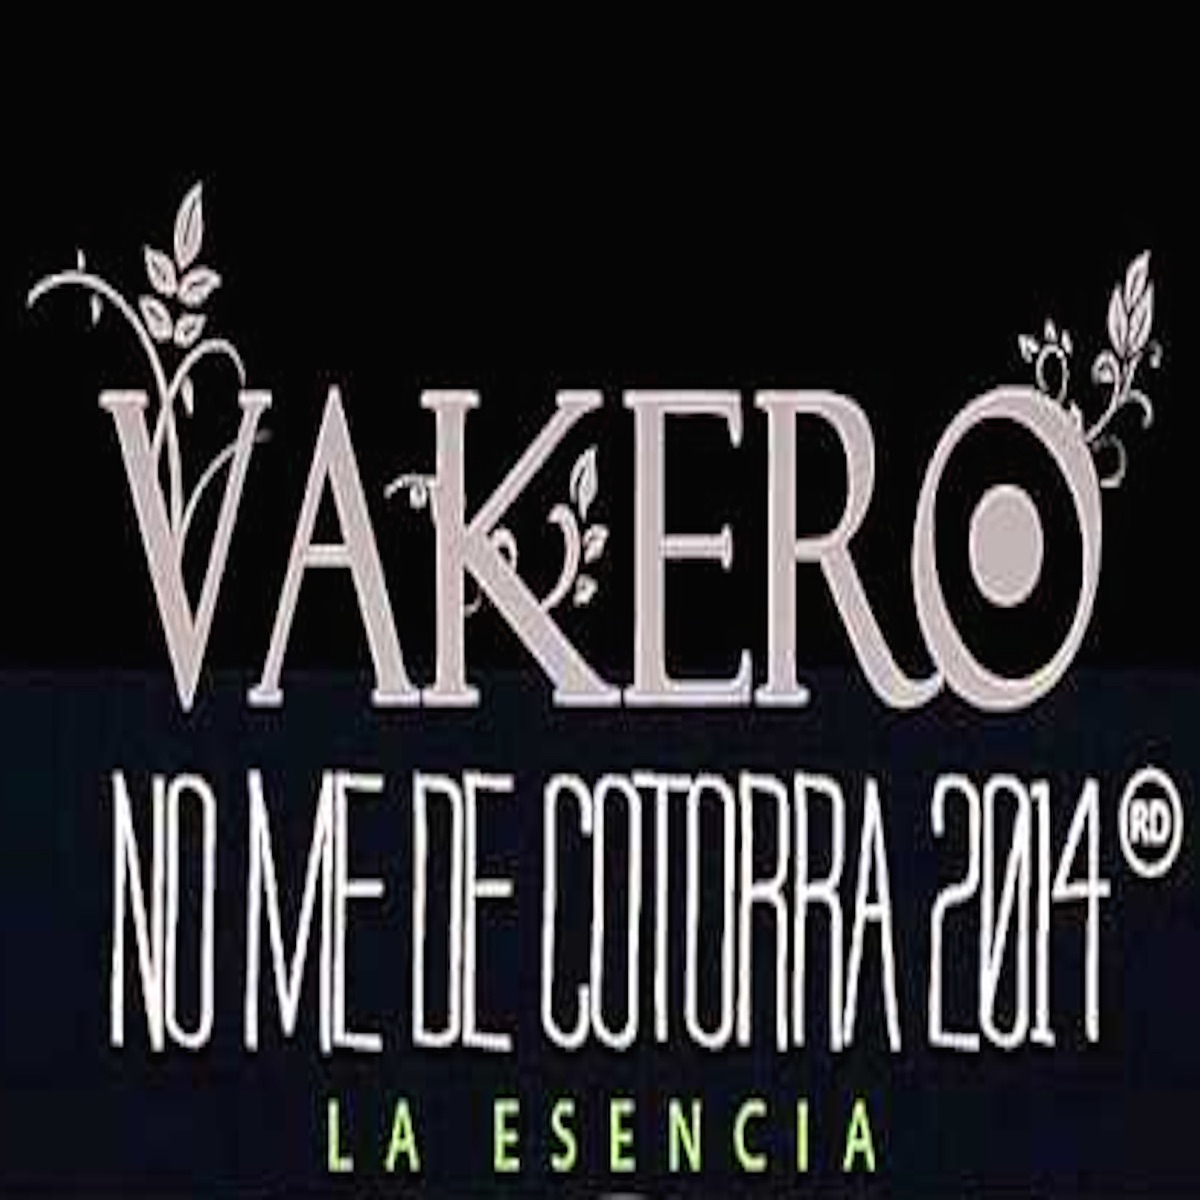 No Me de Cotorra Remix 2014 - EP Vakero CD cover